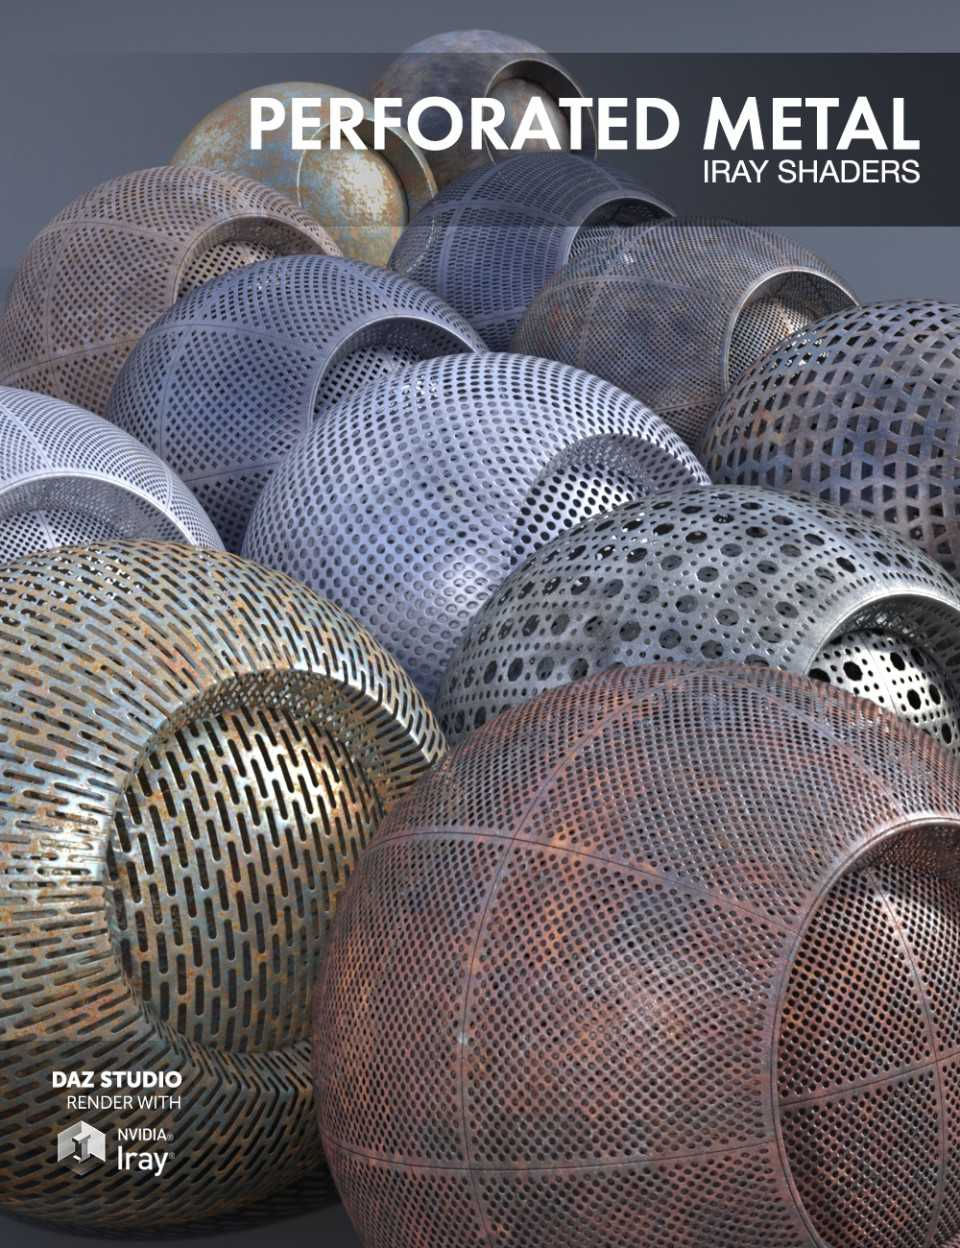 Perforated Metal – Iray Shaders